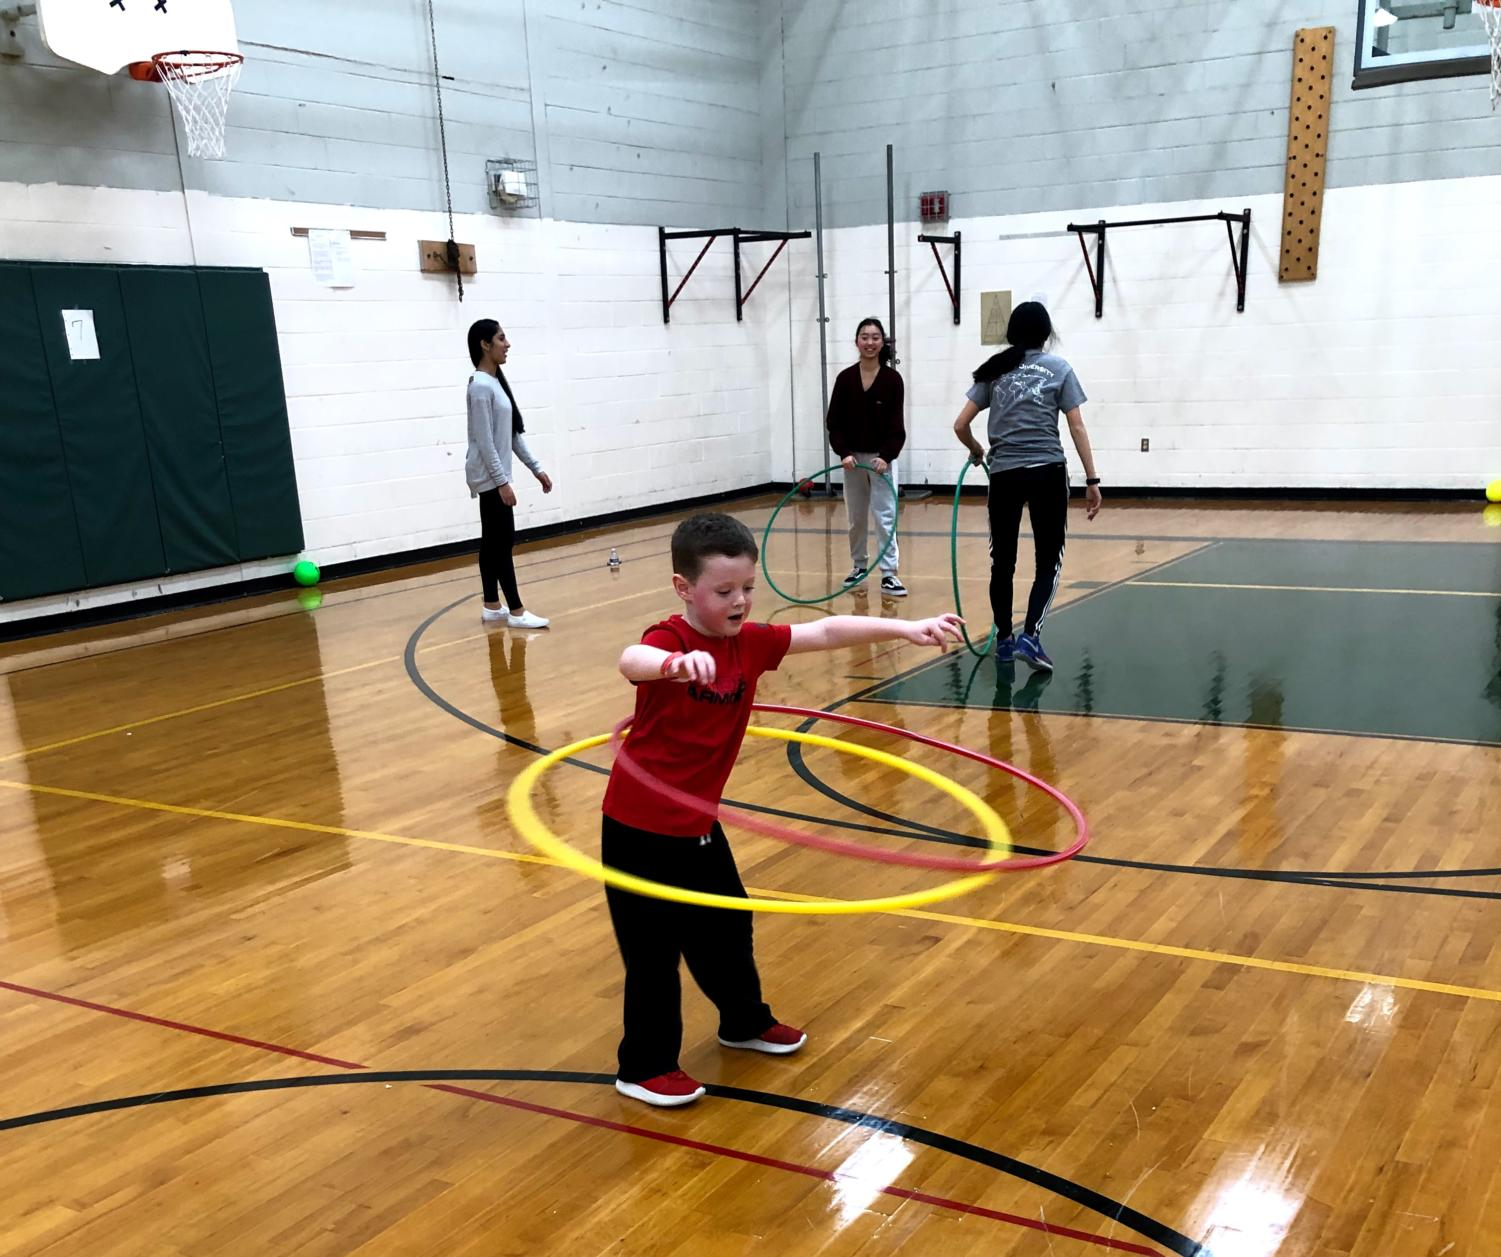 Hula+hooping+was+one+of+the+activities+children+could+participate+in+while+in+the+boys+gymnasium.+